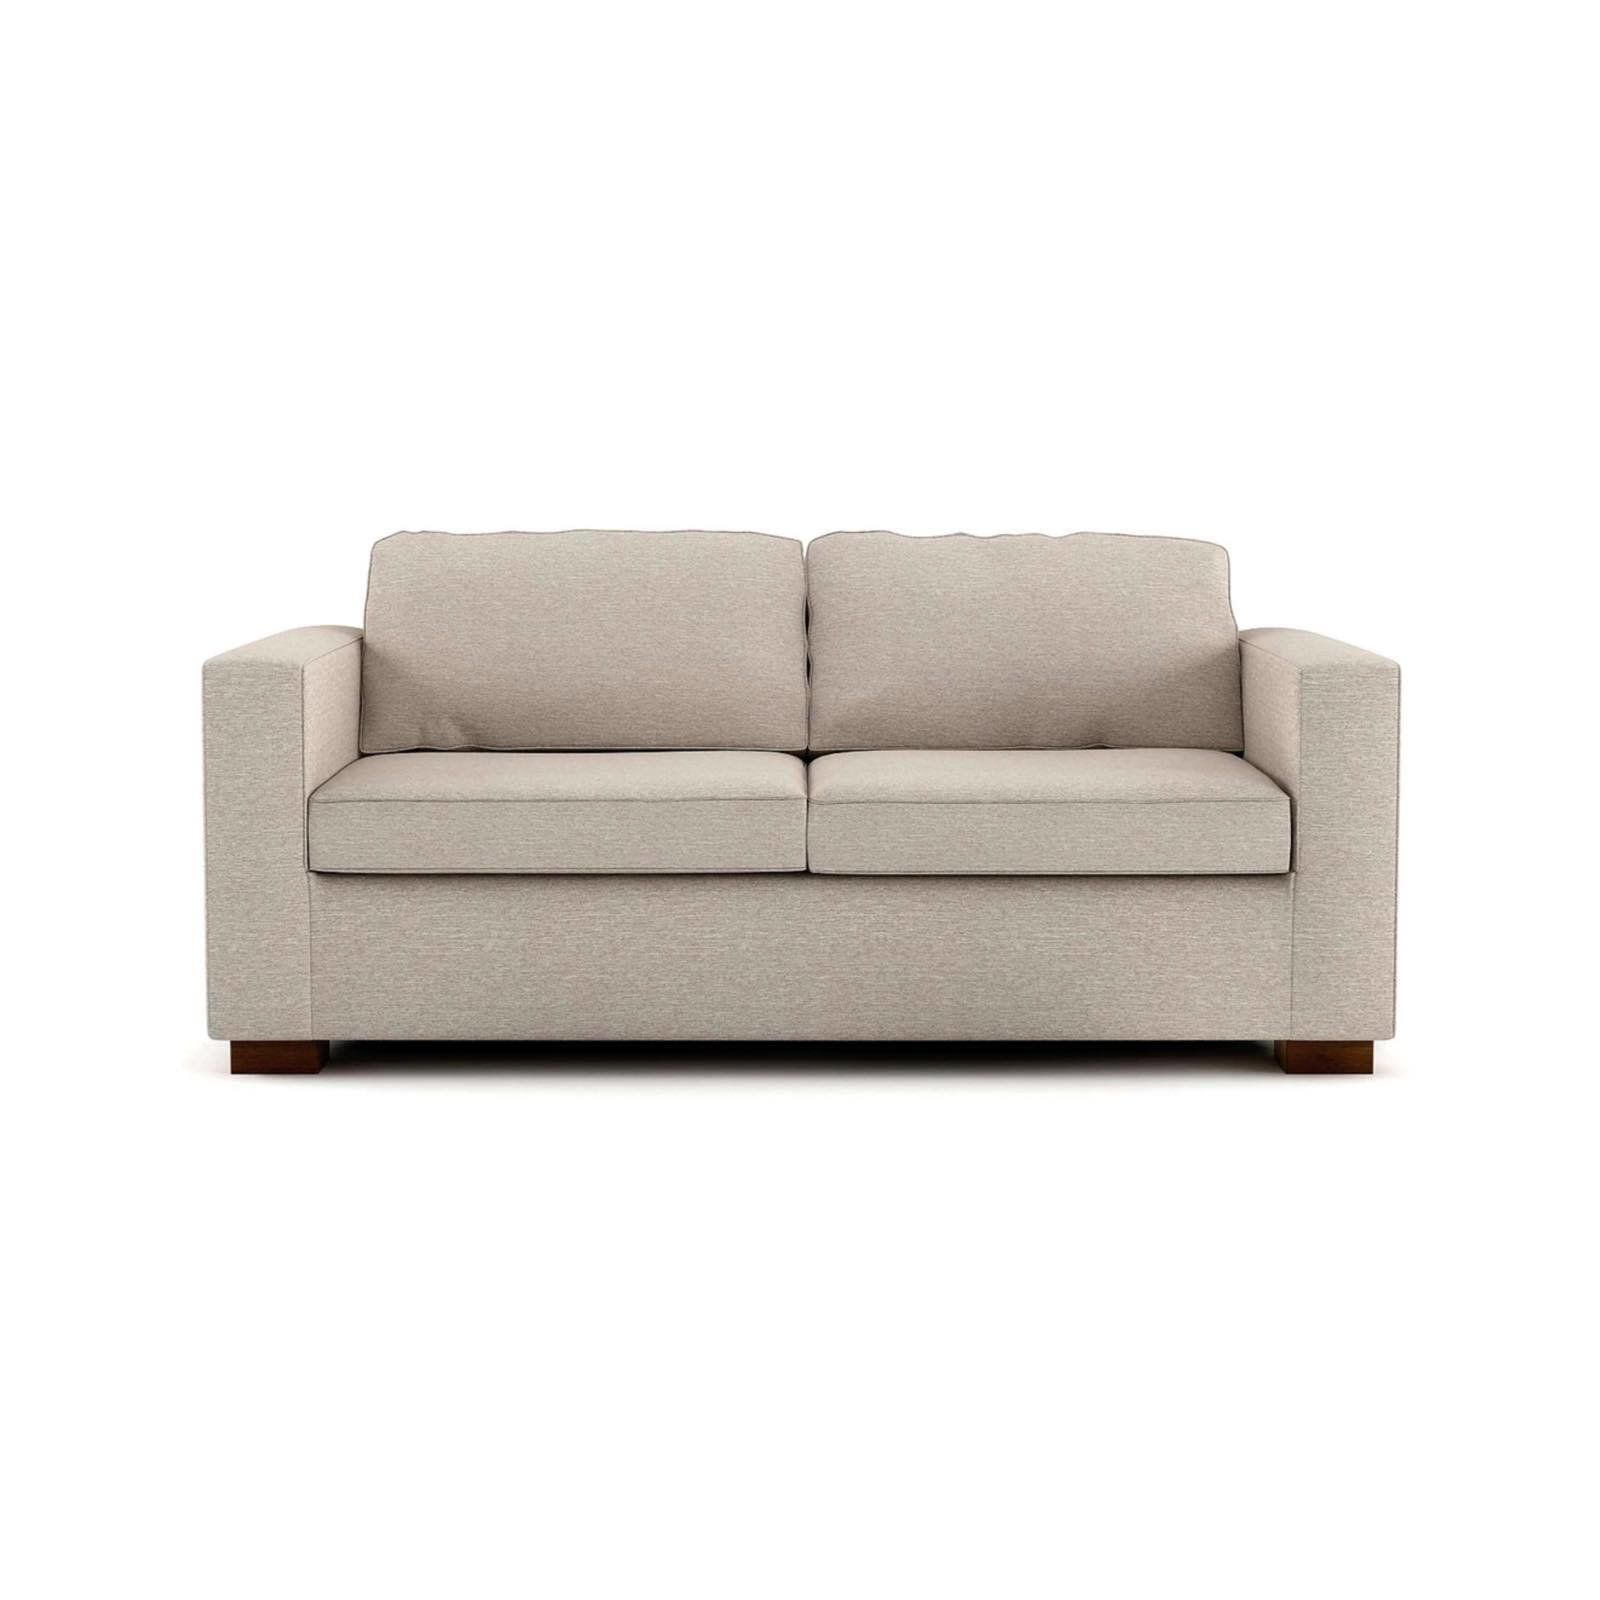 Medley Rio Sofa Bed By Medley Dwell - Blumensofa